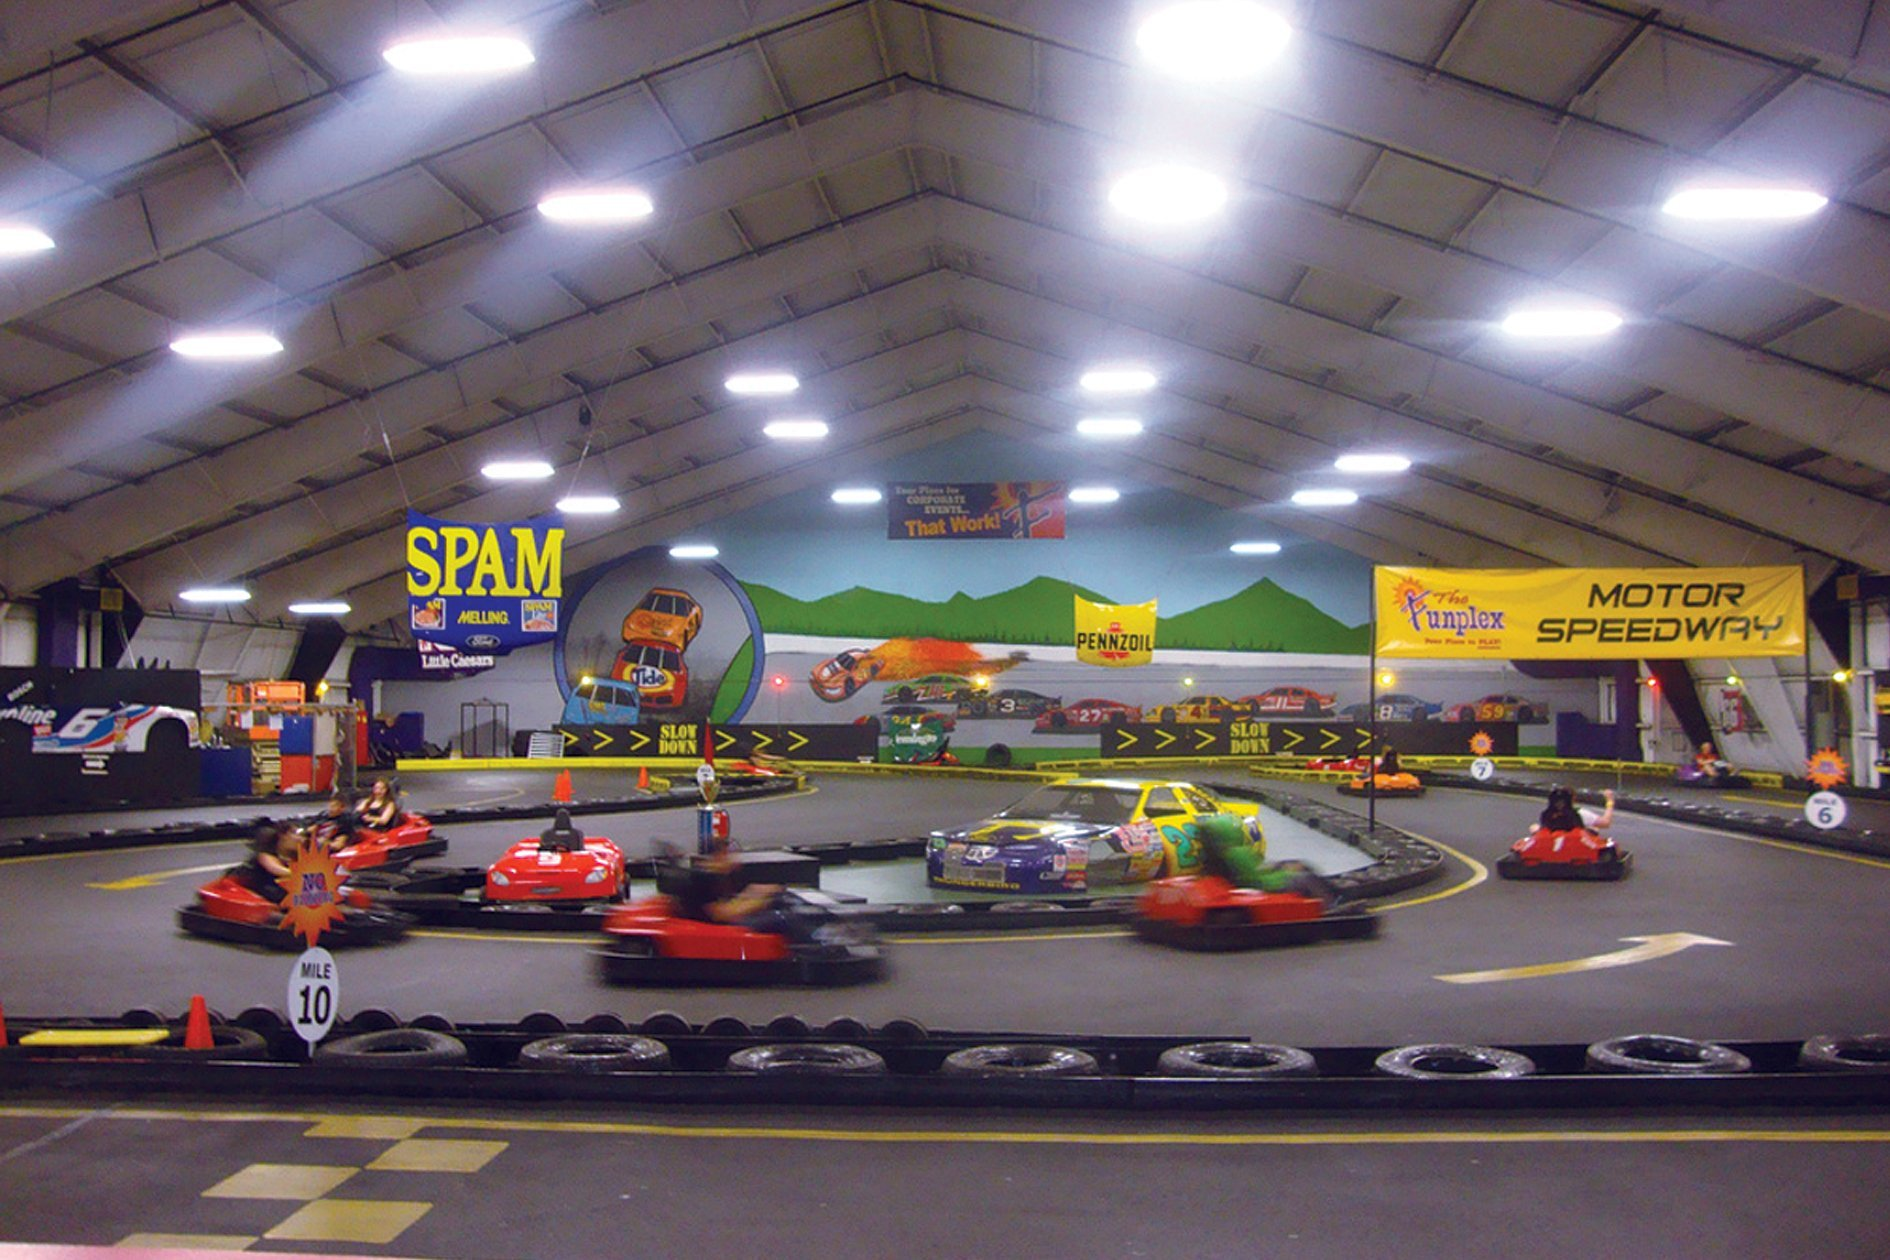 Creating Quick Fun <br/>Trends in Go-kart Racing